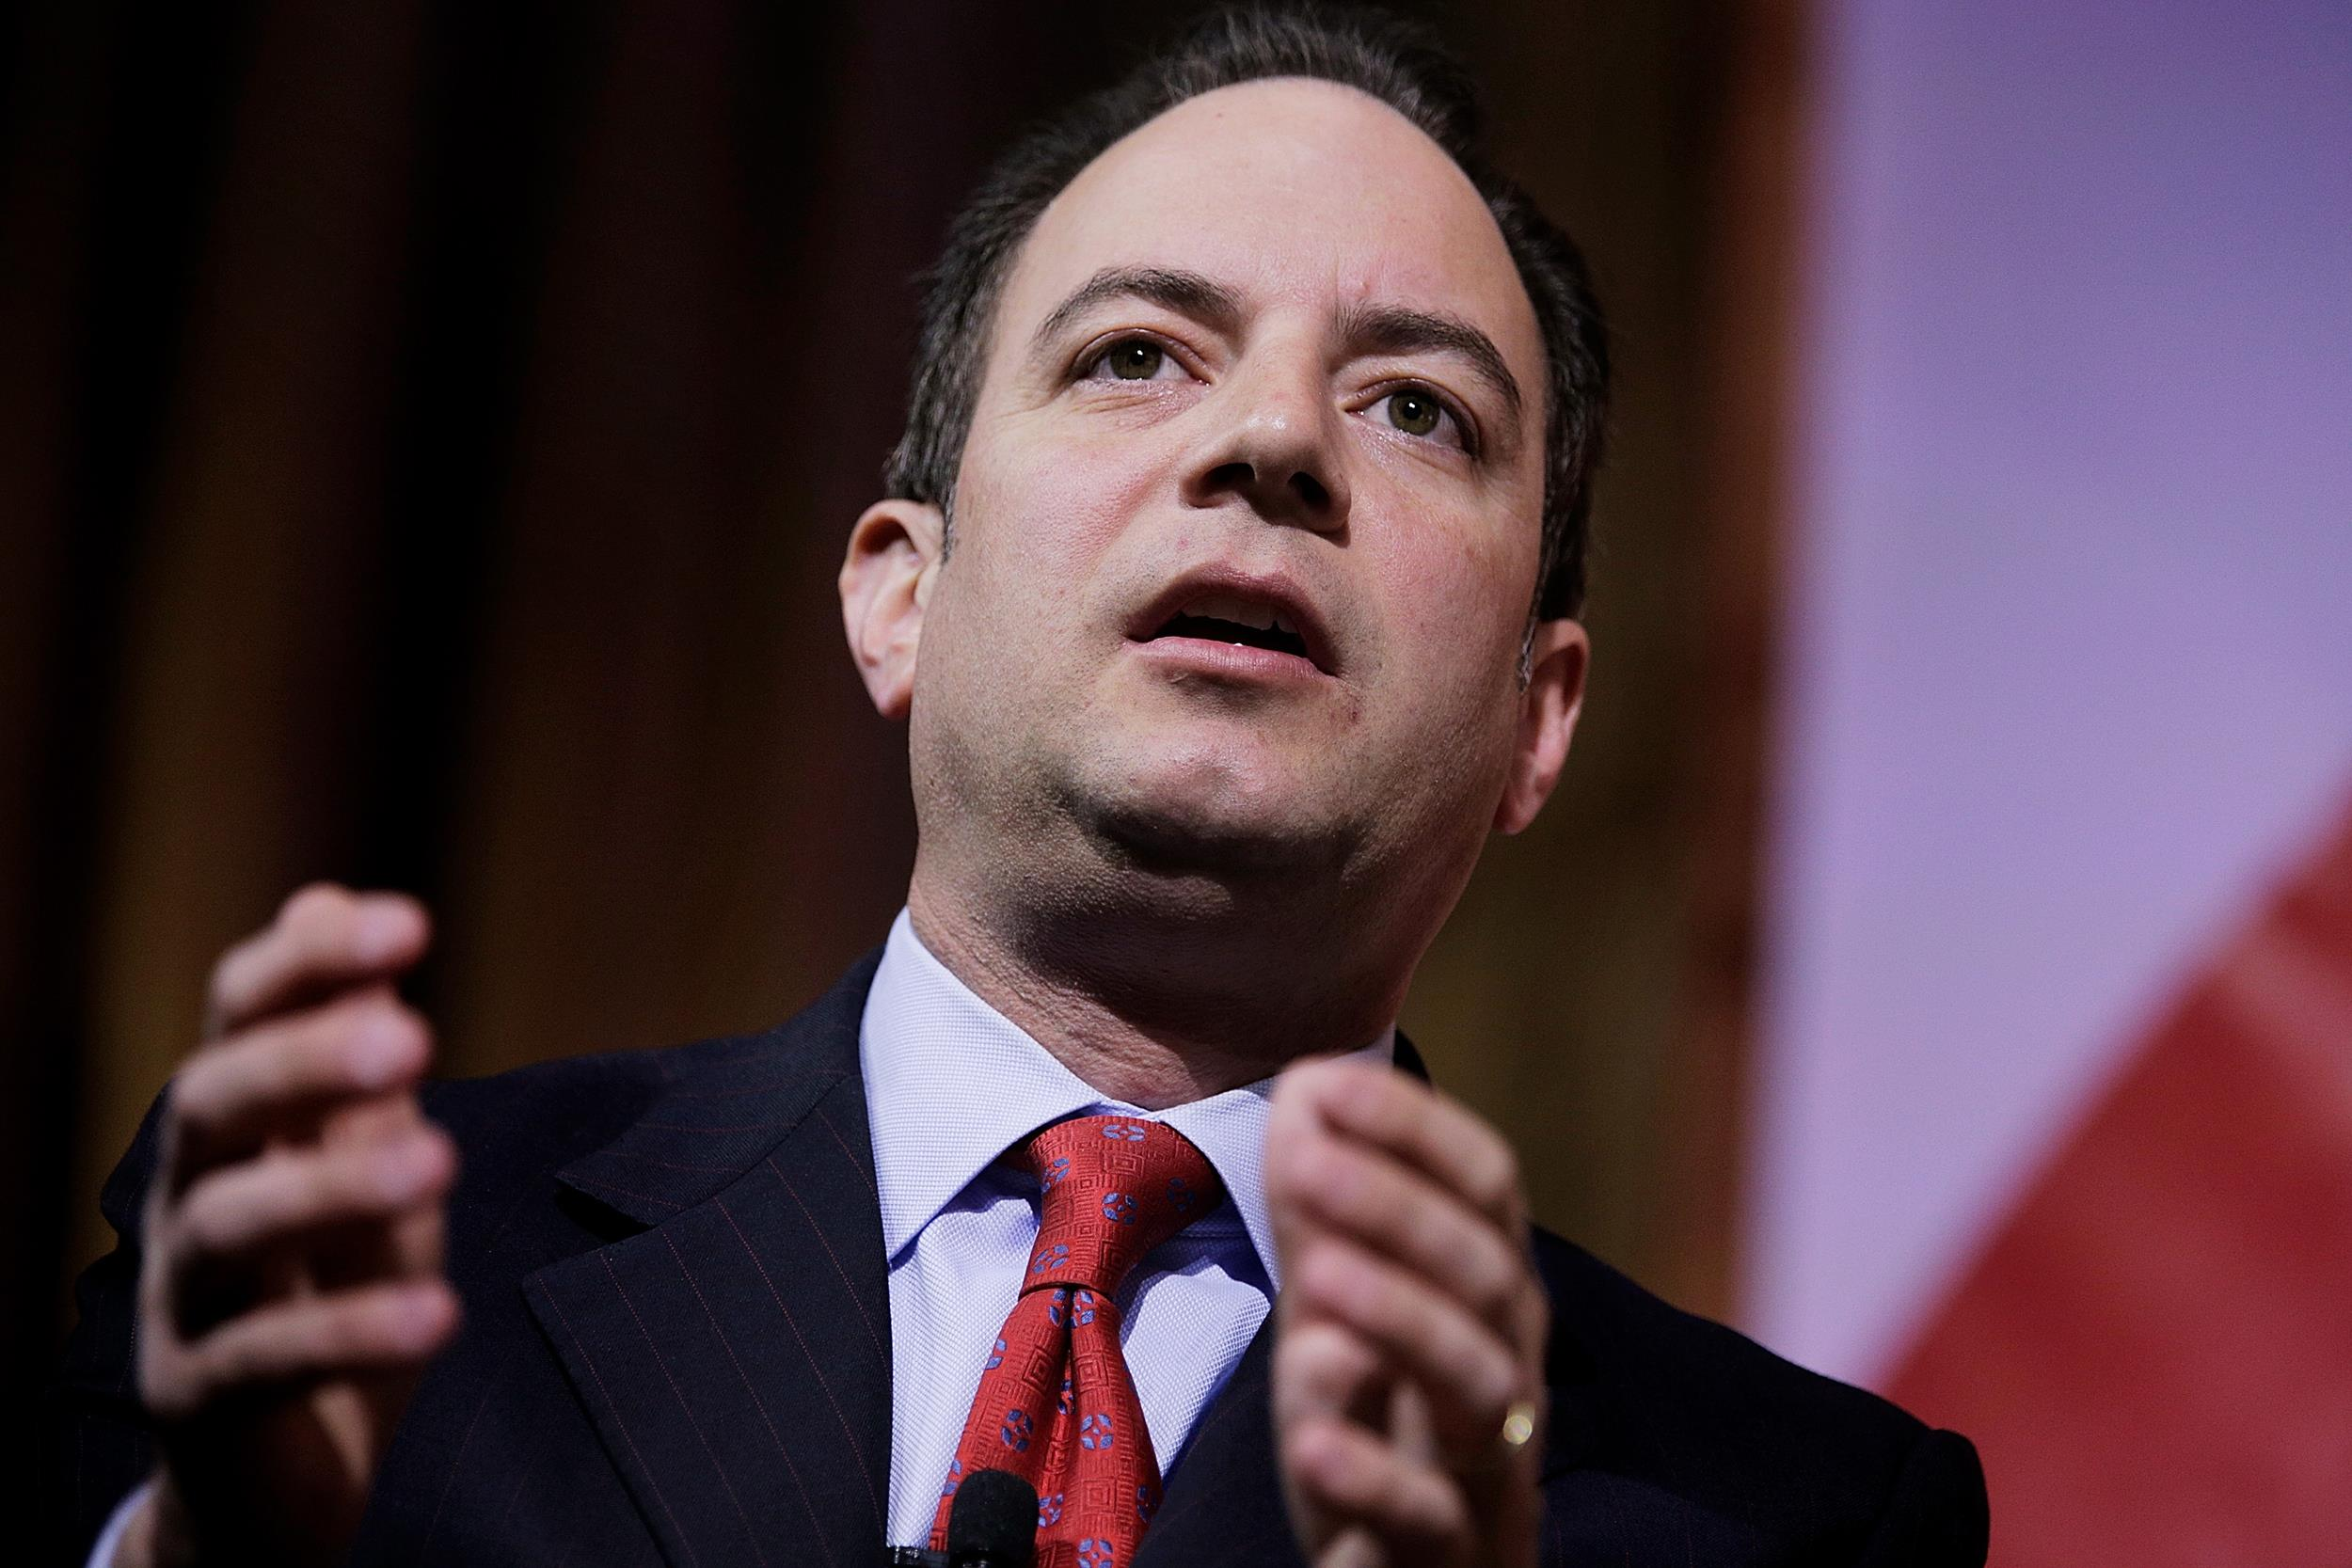 Image: Reince Priebus, chairman of the Republican National Committee